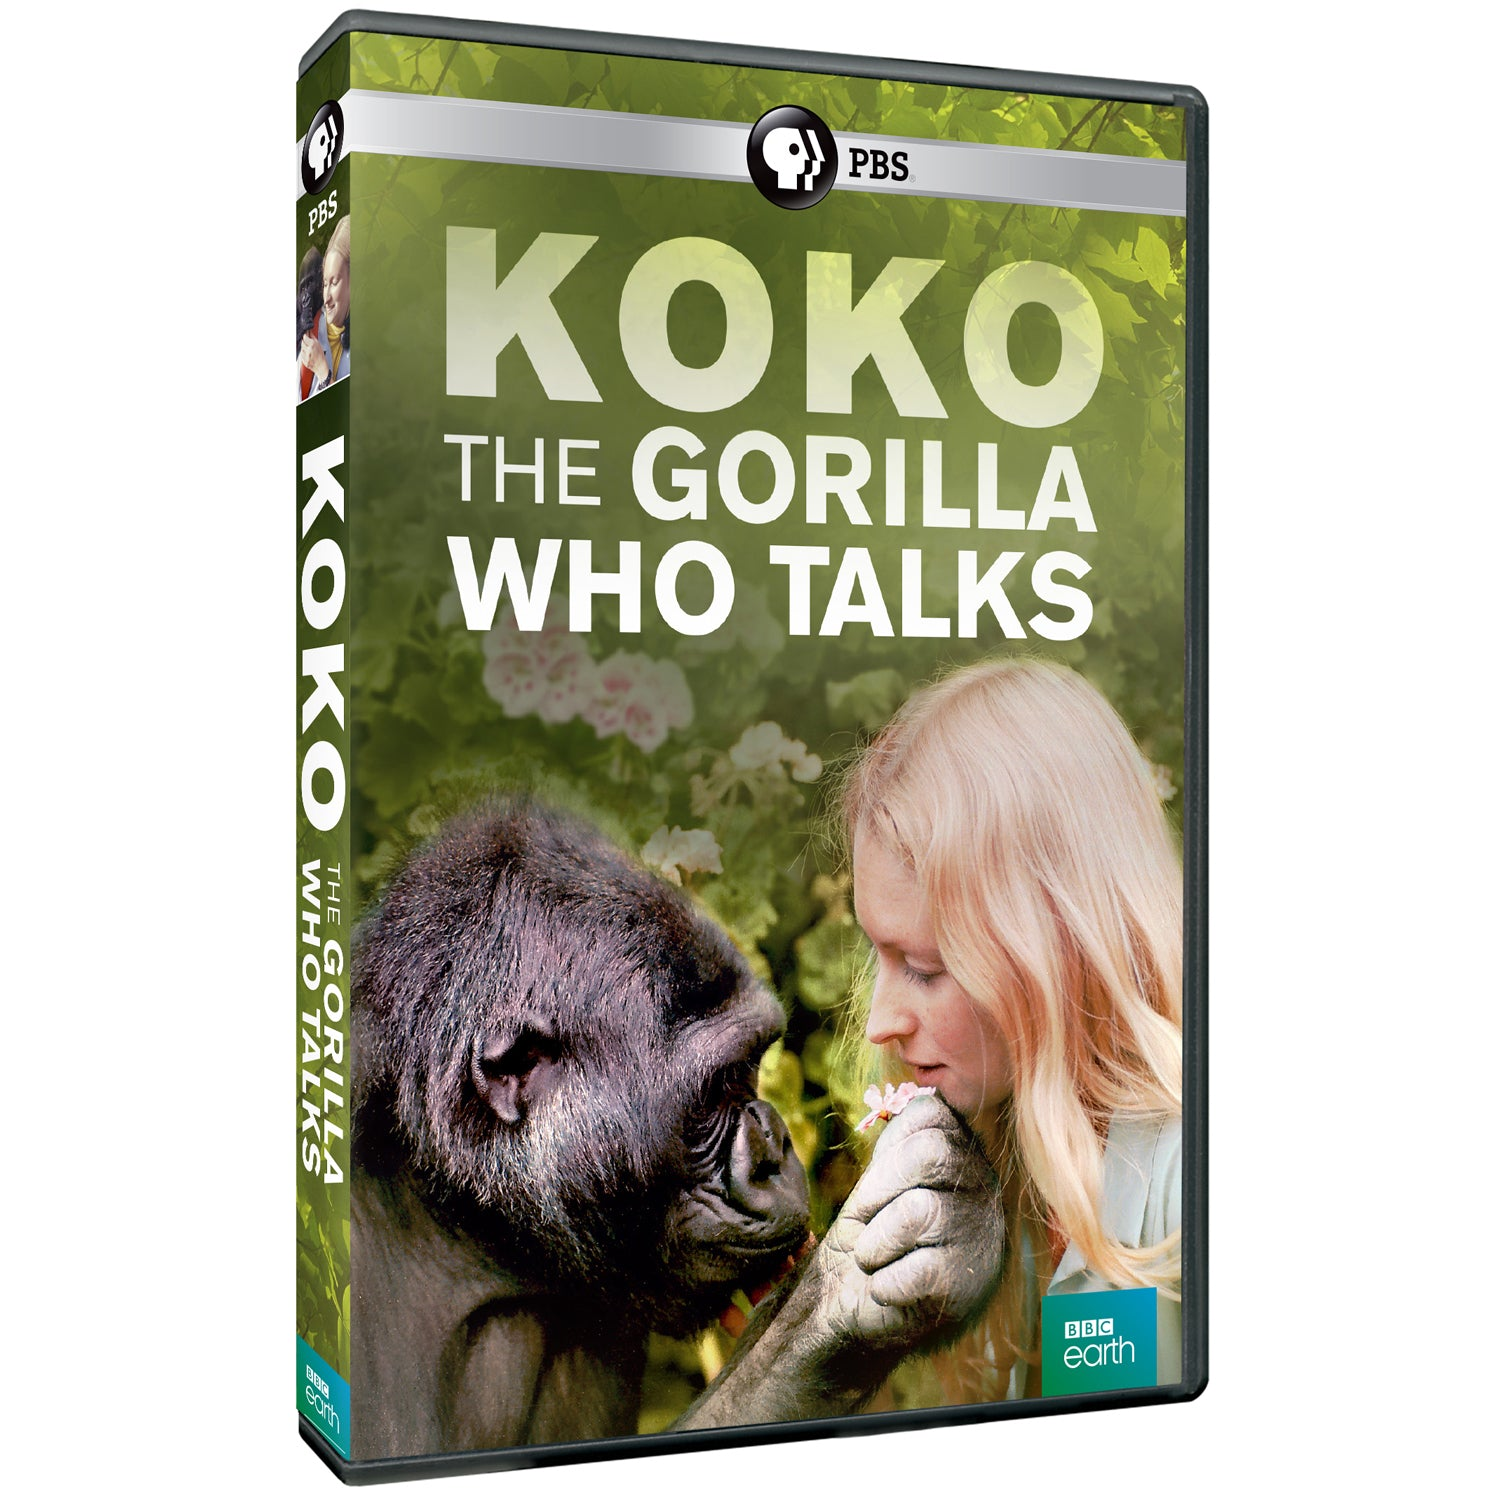 Koko: The Gorilla Who Talks